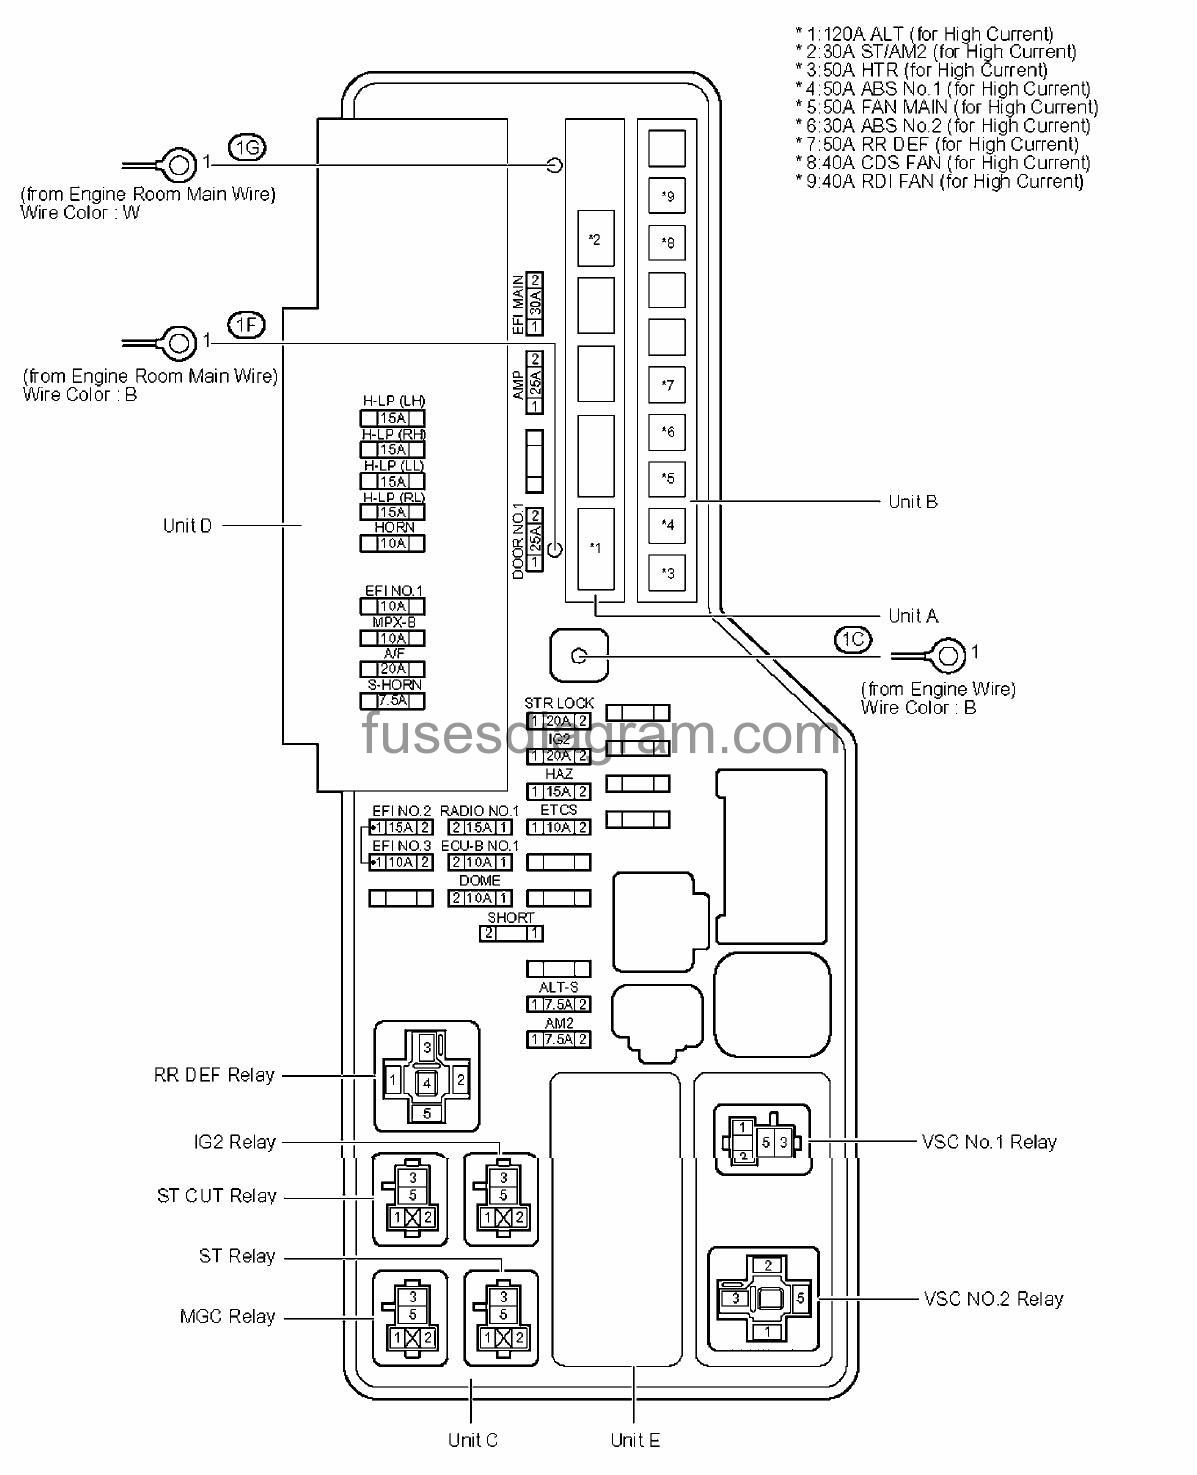 2009 corolla fuse box diagram